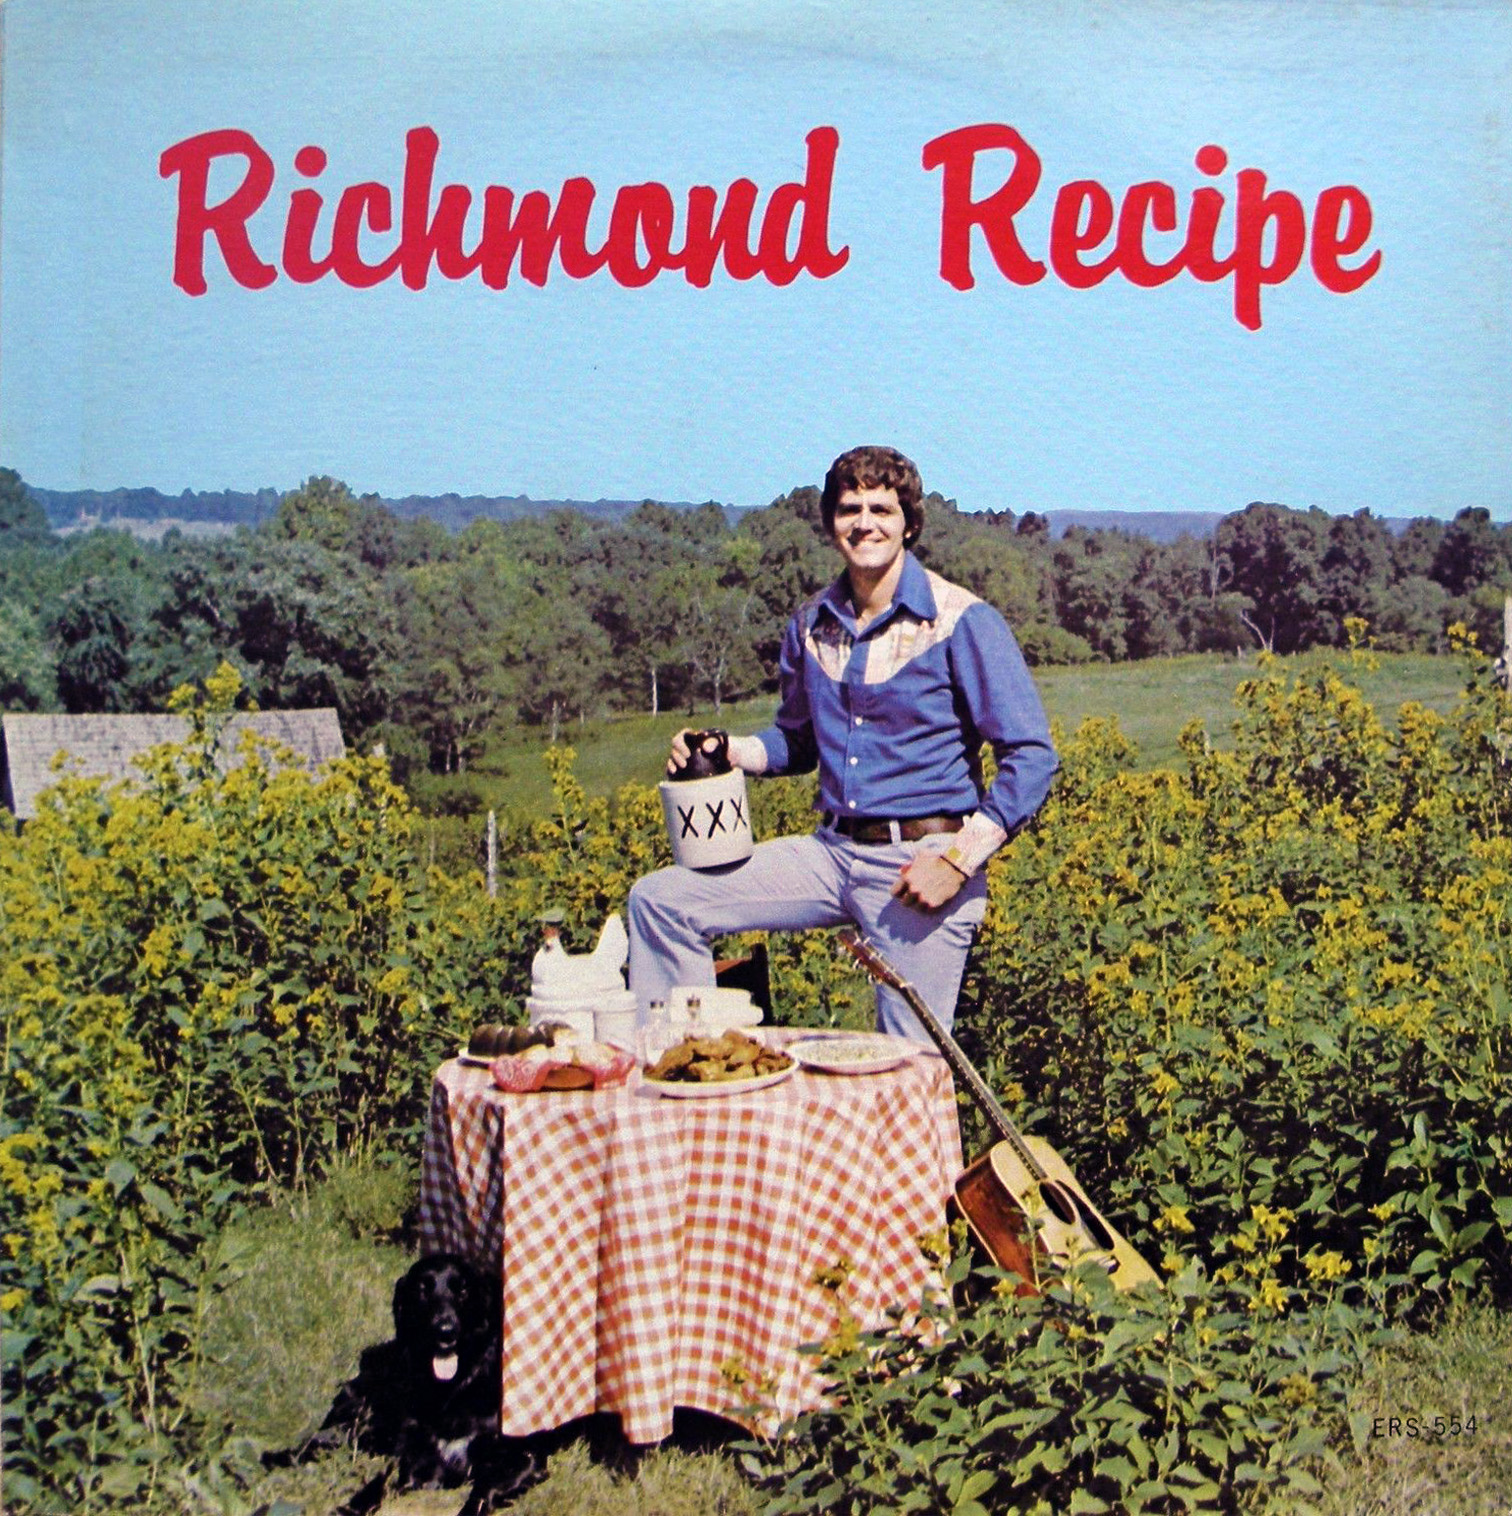 richmond-recipe